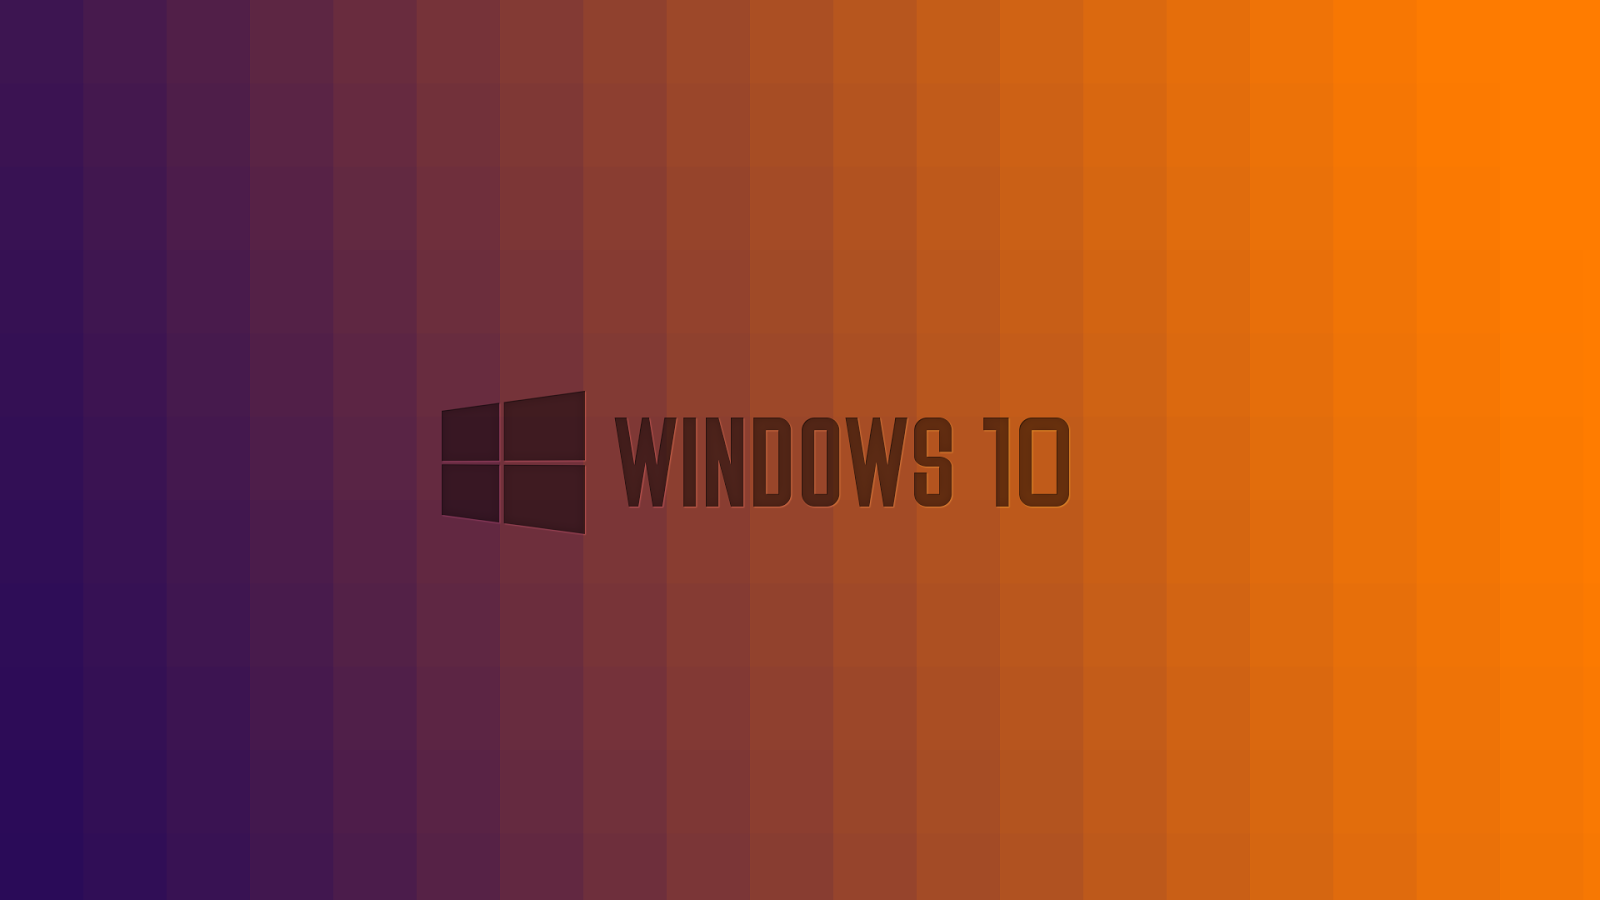 Window 10 pro enterprise technical preview build 10074 for x32 window 10 pro enterprise technical preview build 10074 for x32 x64 with language pack ccuart Image collections